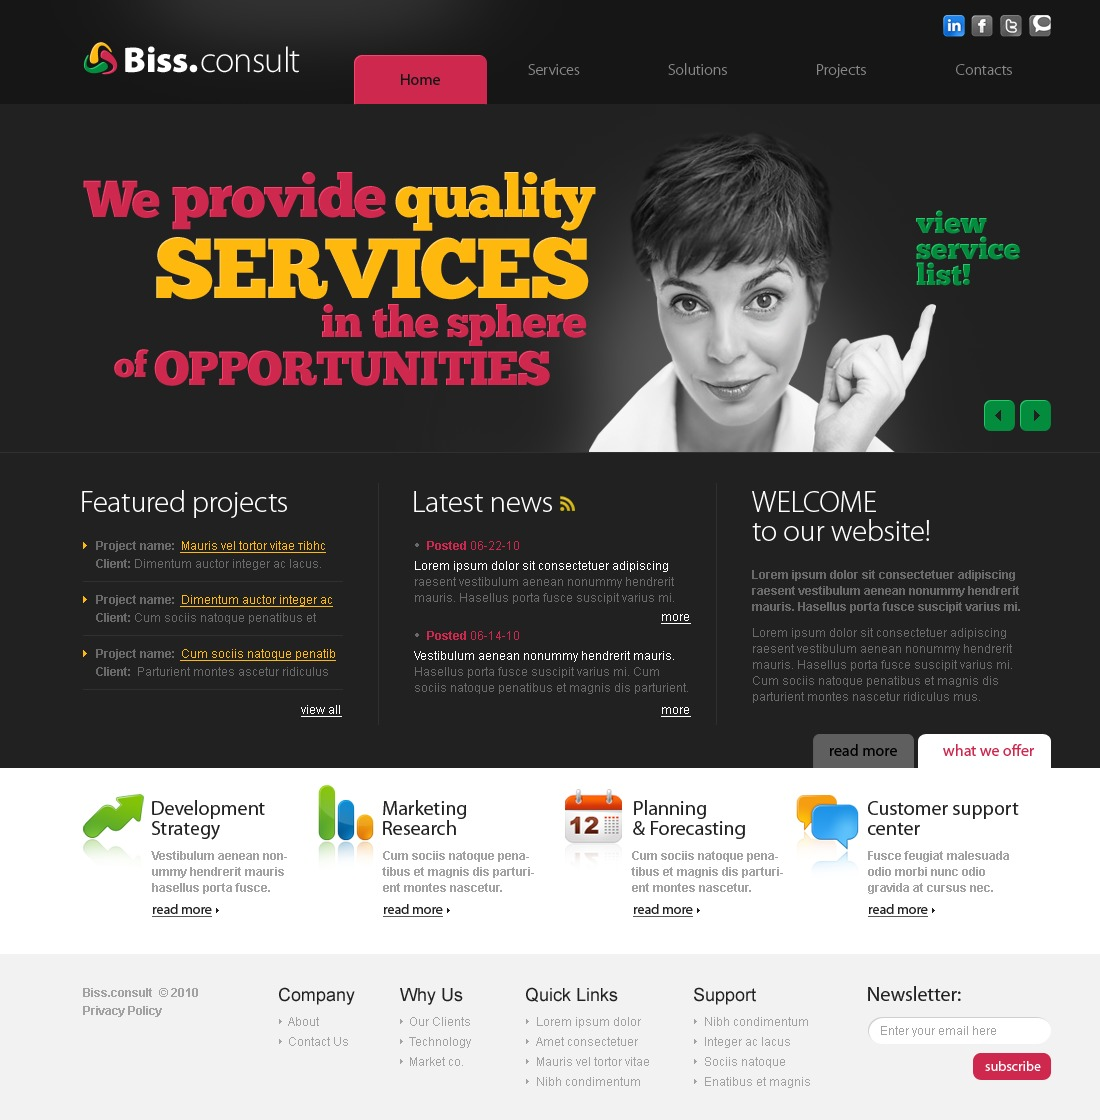 The Biss Consult PSD Design 54148, one of the best PSD templates of its kind (business, flash 8, wide), also known as biss consult PSD template, business company PSD template, corporate solutions PSD template, innovations PSD template, contacts PSD template, service PSD template, support PSD template, information dealer PSD template, stocks PSD template, team PSD template, success PSD template, money PSD template, marketing PSD template, director PSD template, manager PSD template, analytics PSD template, planning PSD template, limited PSD template, office PSD template, sales and related with biss consult, business company, corporate solutions, innovations, contacts, service, support, information dealer, stocks, team, success, money, marketing, director, manager, analytics, planning, limited, office, sales, etc.